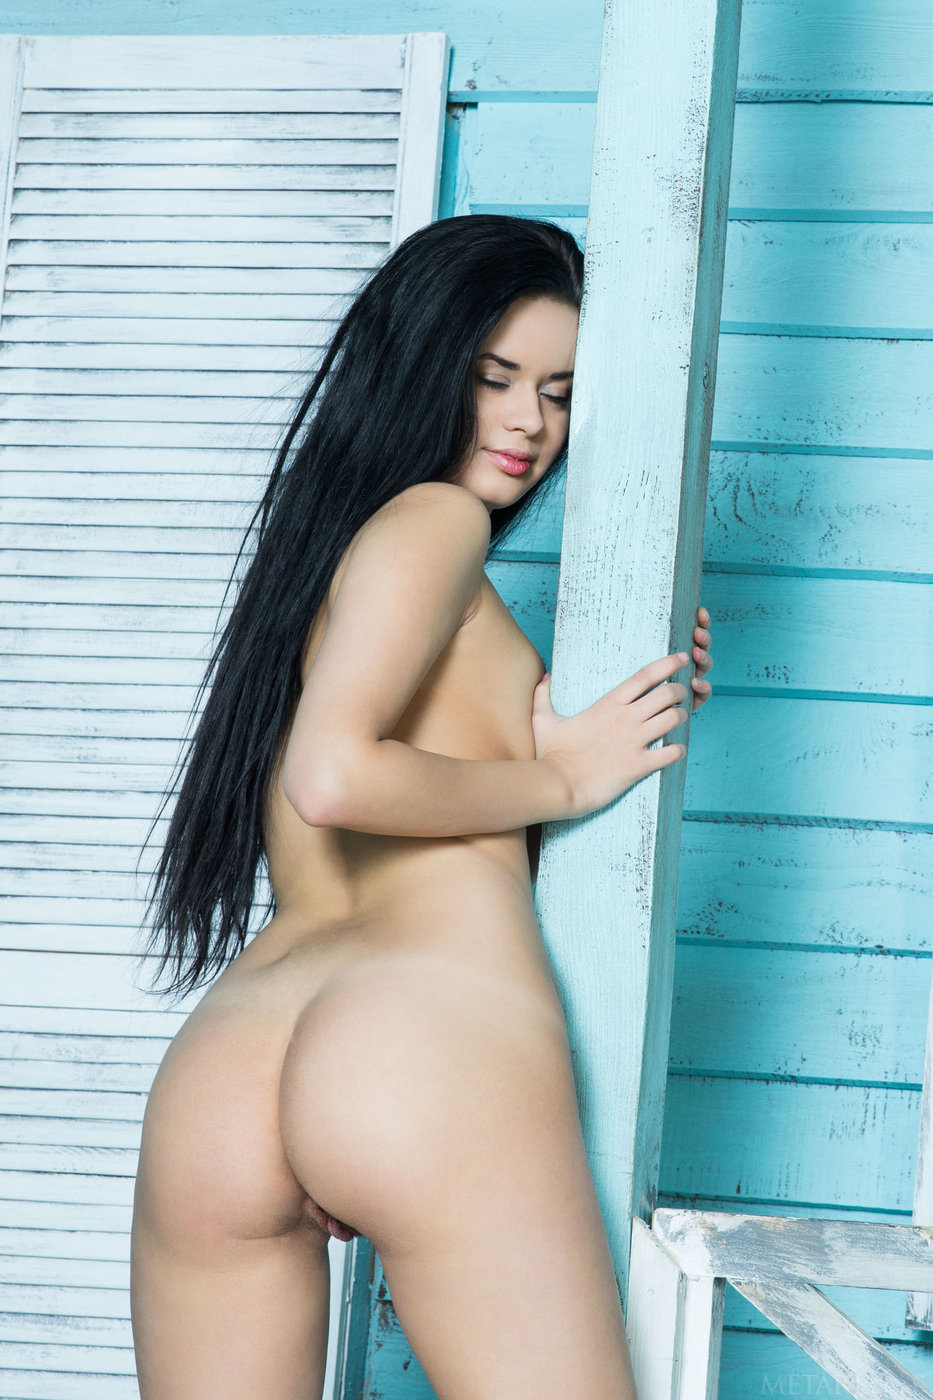 What Statuesque naked brunette apologise, too